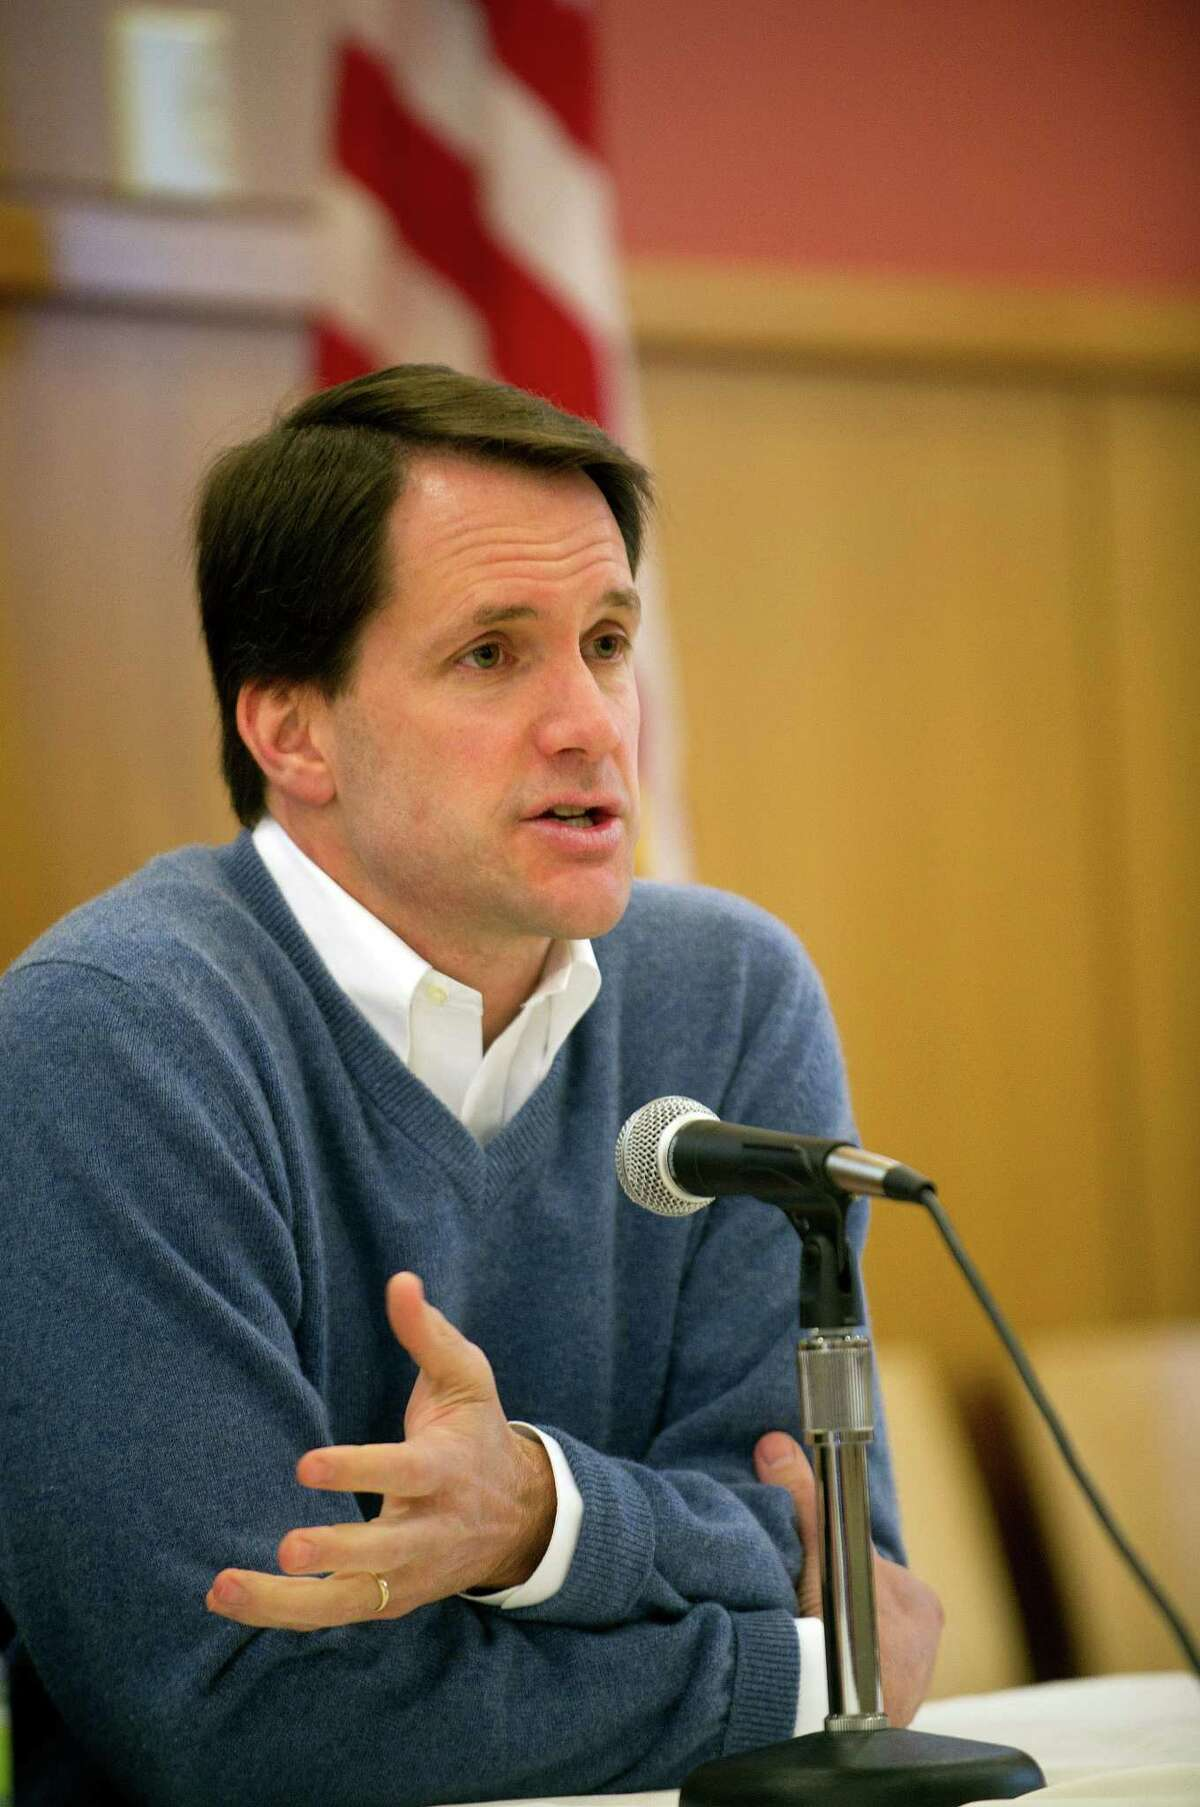 U.S. Representative Jim Himes speaks at the Darien Library during a discussion about gun violence prevention on Saturday, February 23, 2013.